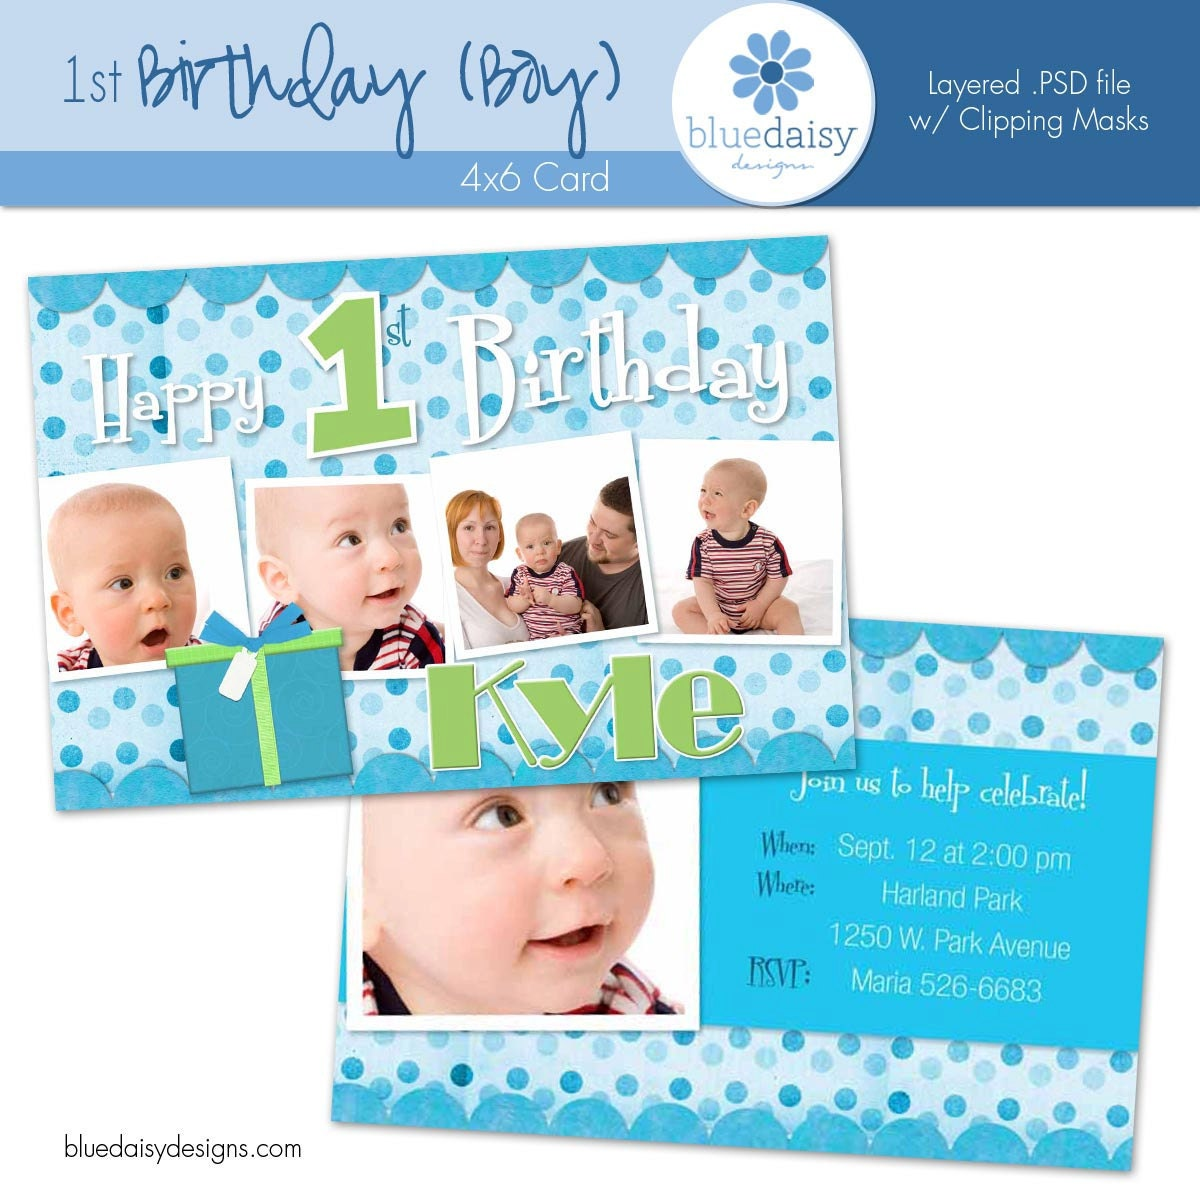 year old boy birthday invitation custom photo announcement, invitation samples